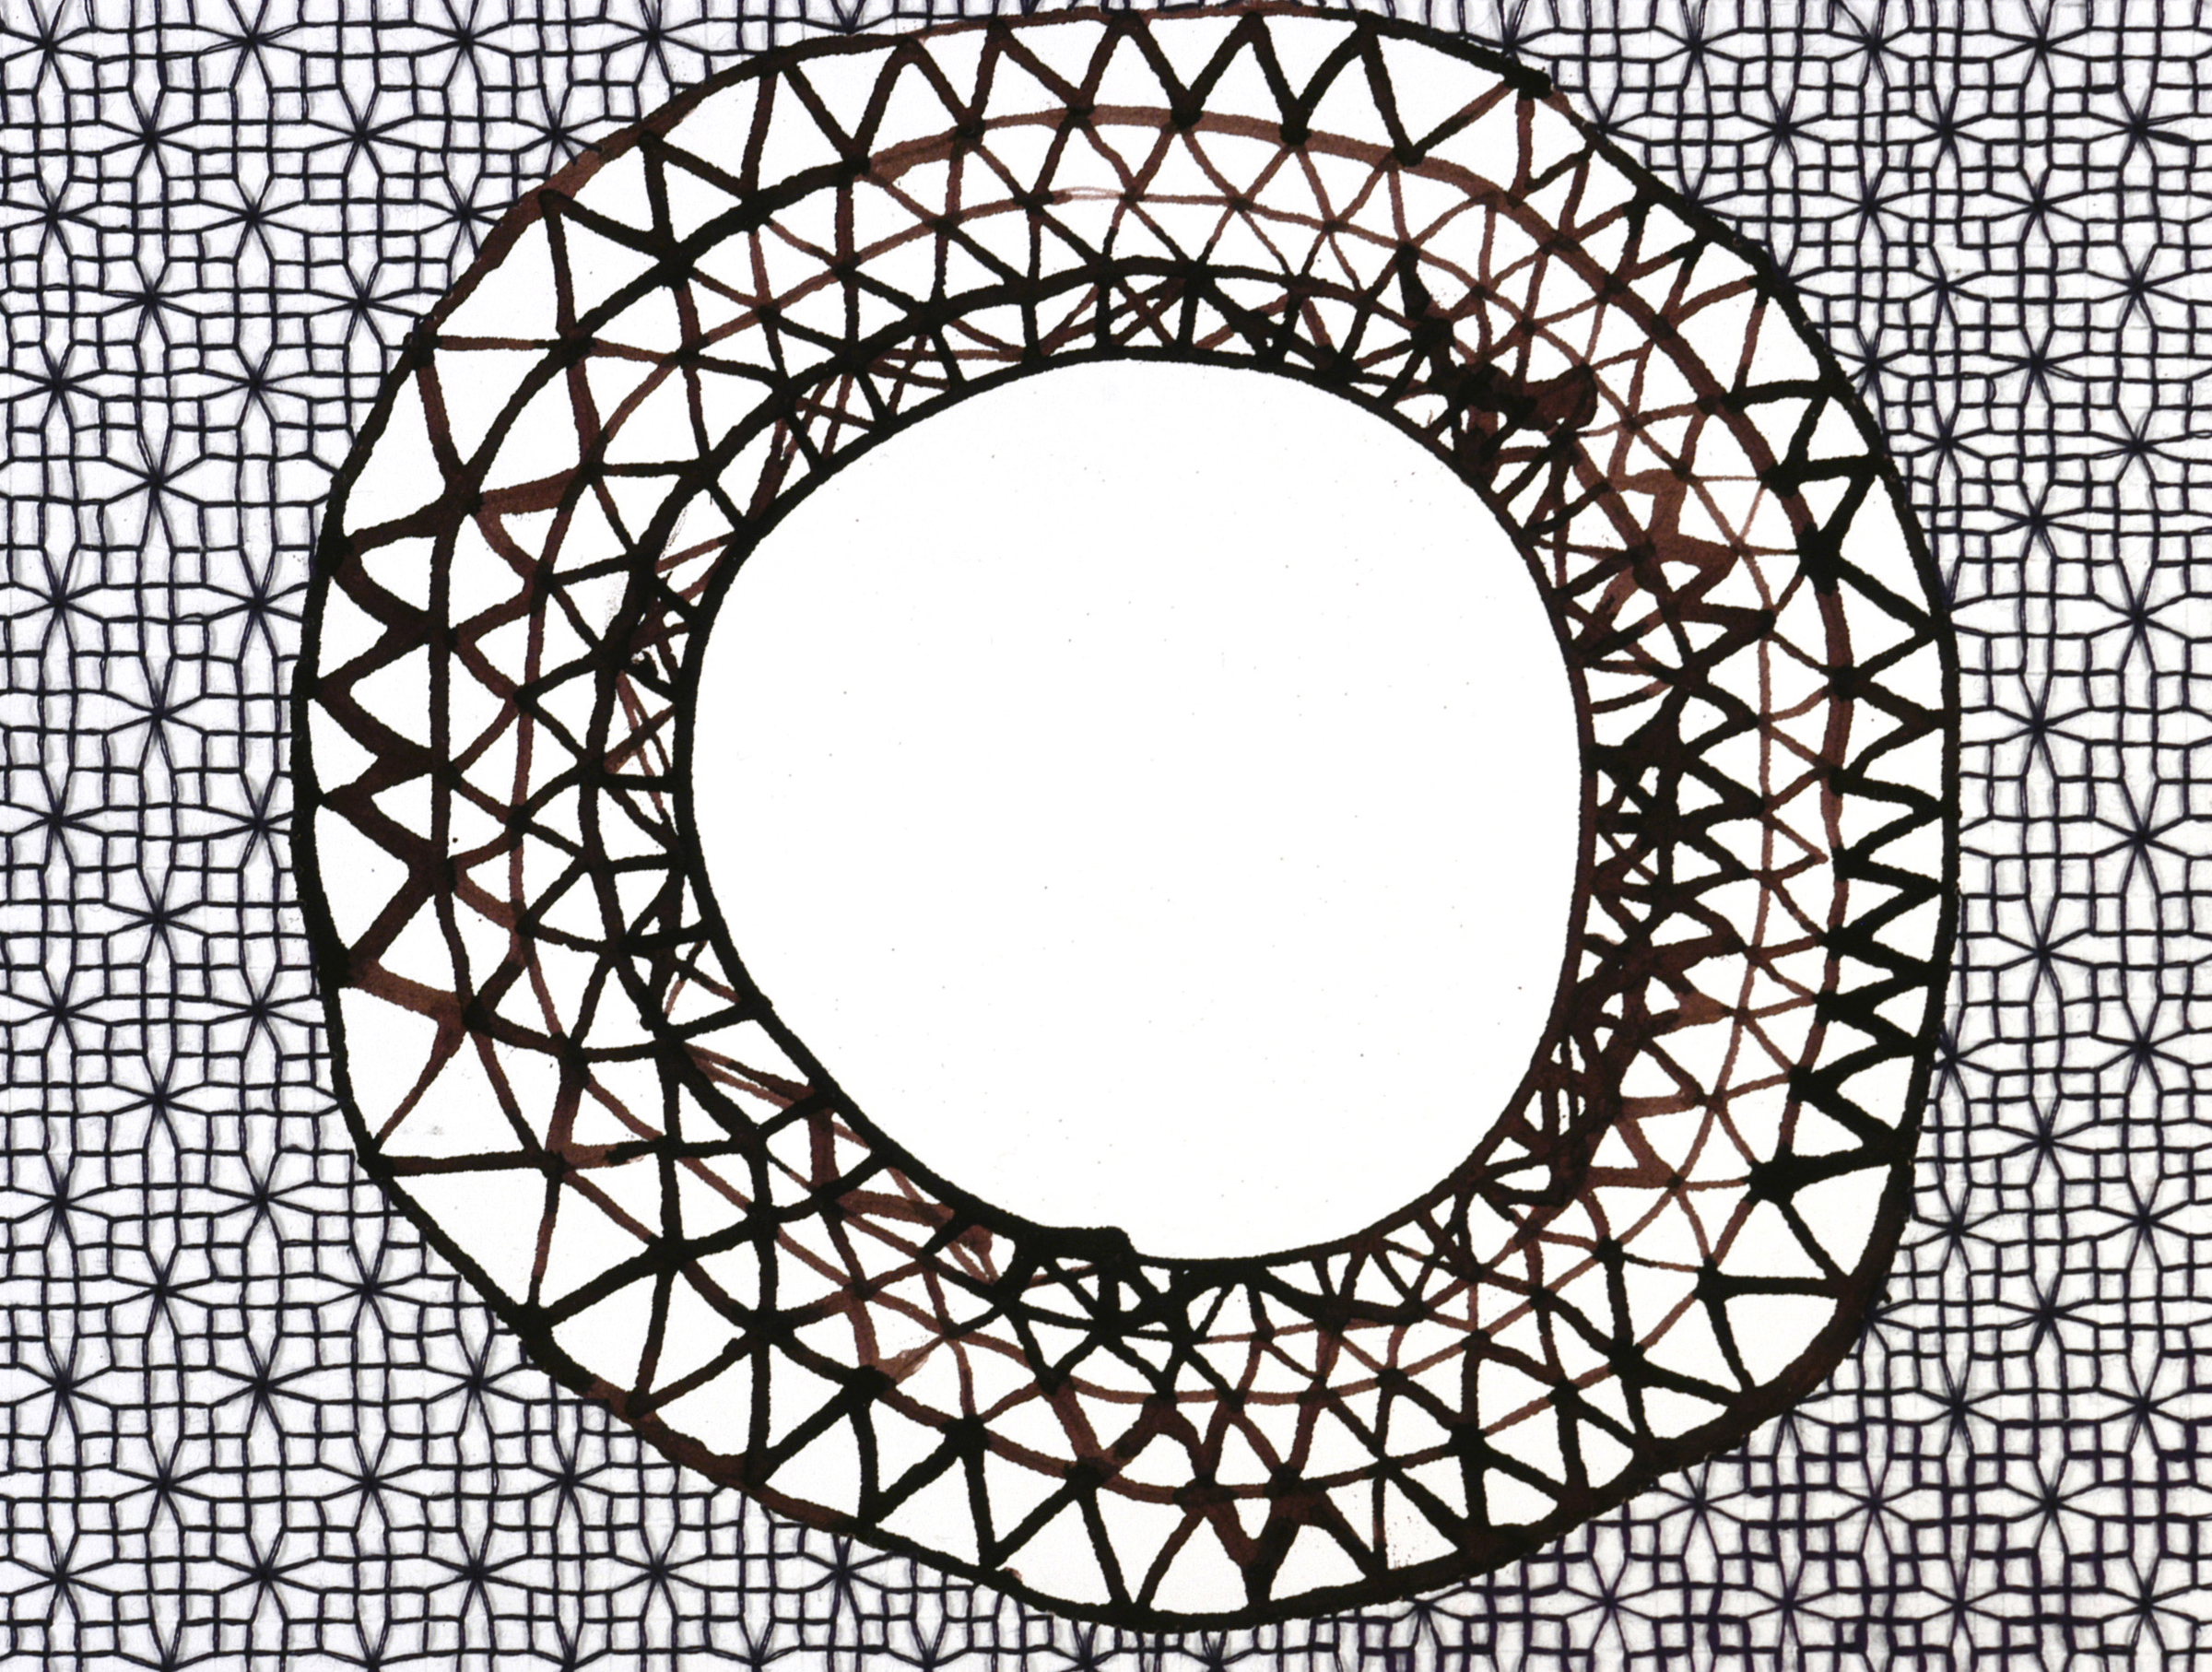 Ink and Blackwork Doily, 2006